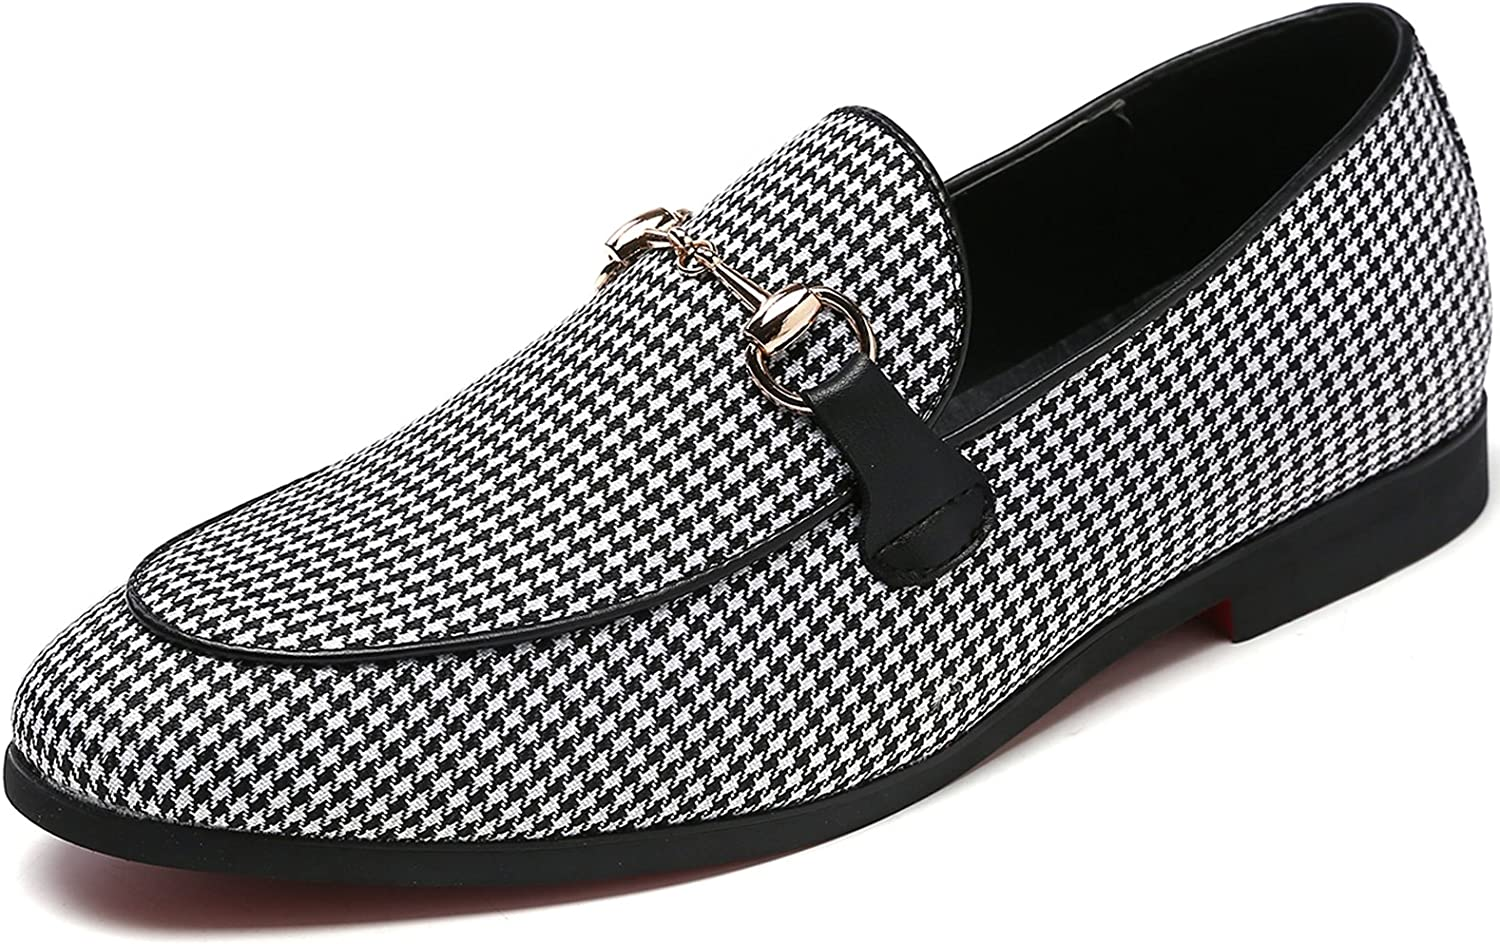 M-anxiu Men's Modern Plaid Driving shoes Tuxedo Slip On Loafers British Round Toe Moccasin